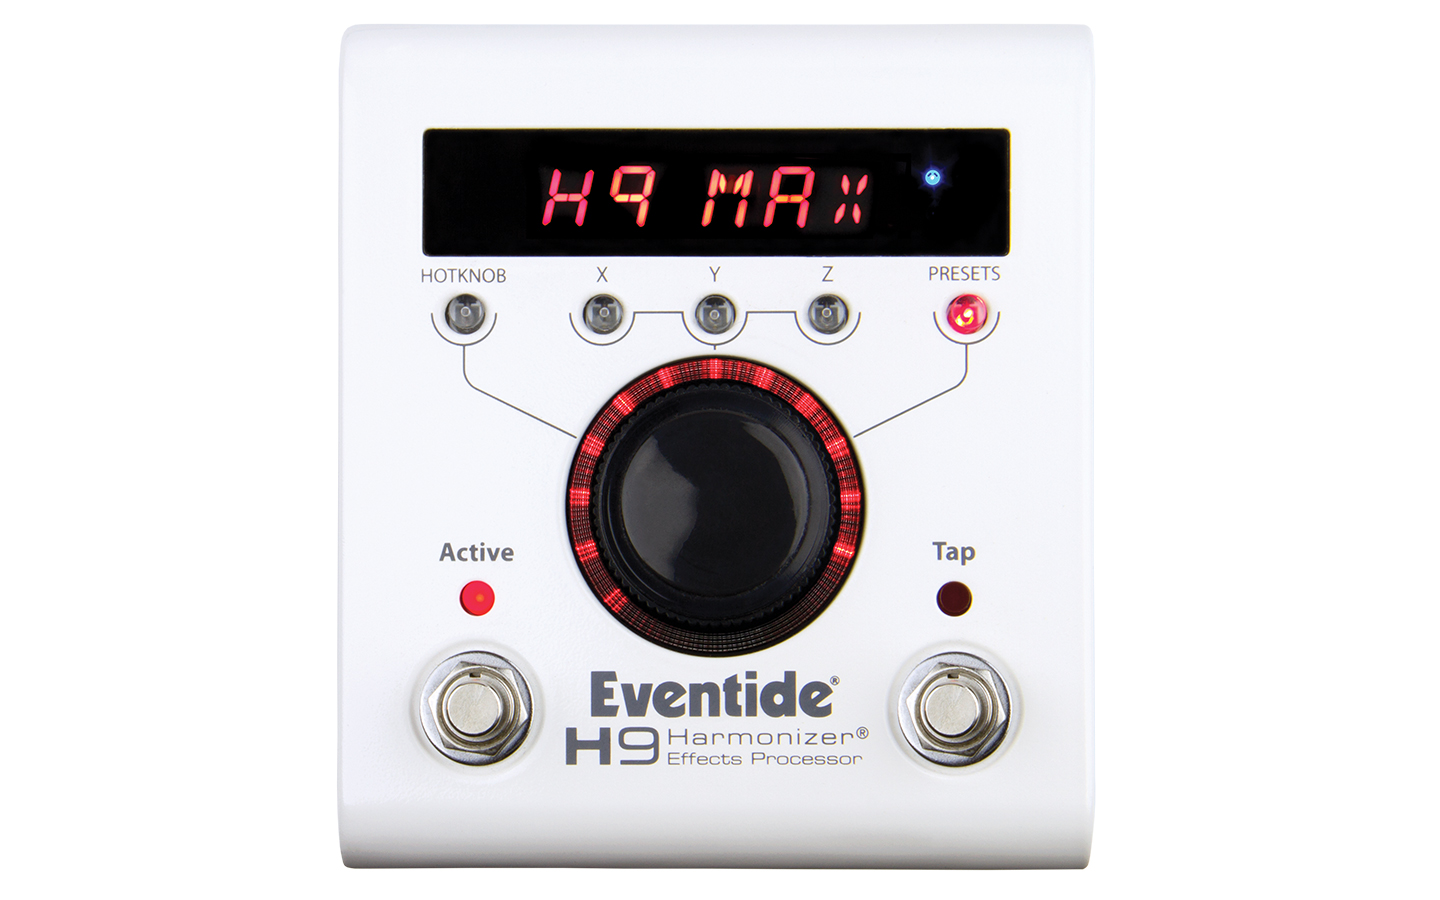 Eventide H9 Max Multi Effects FX Pedal Stompbox